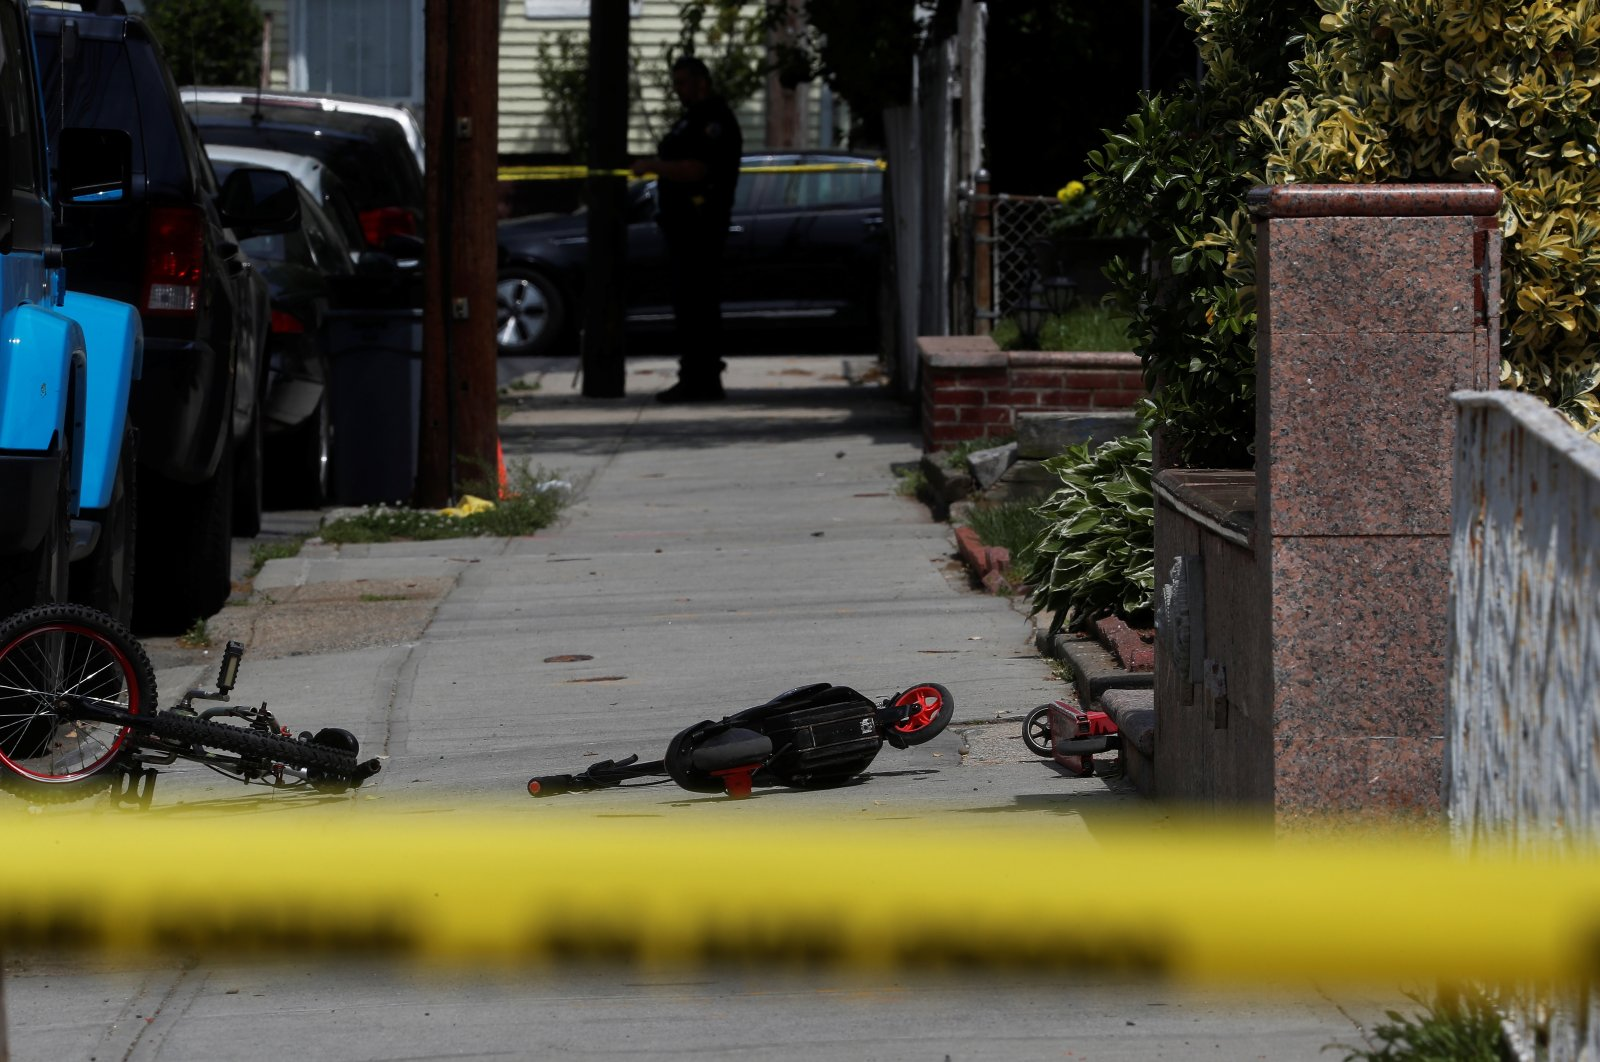 A New York police officer stands by police tape while small scooters and a bicycle lay on the sidewalk at a crime scene where three people were wounded, including an 8-year-old child, in a drive-by shooting in the Queens borough of New York City, the U.S., May 20, 2021. (Reuters Photo)